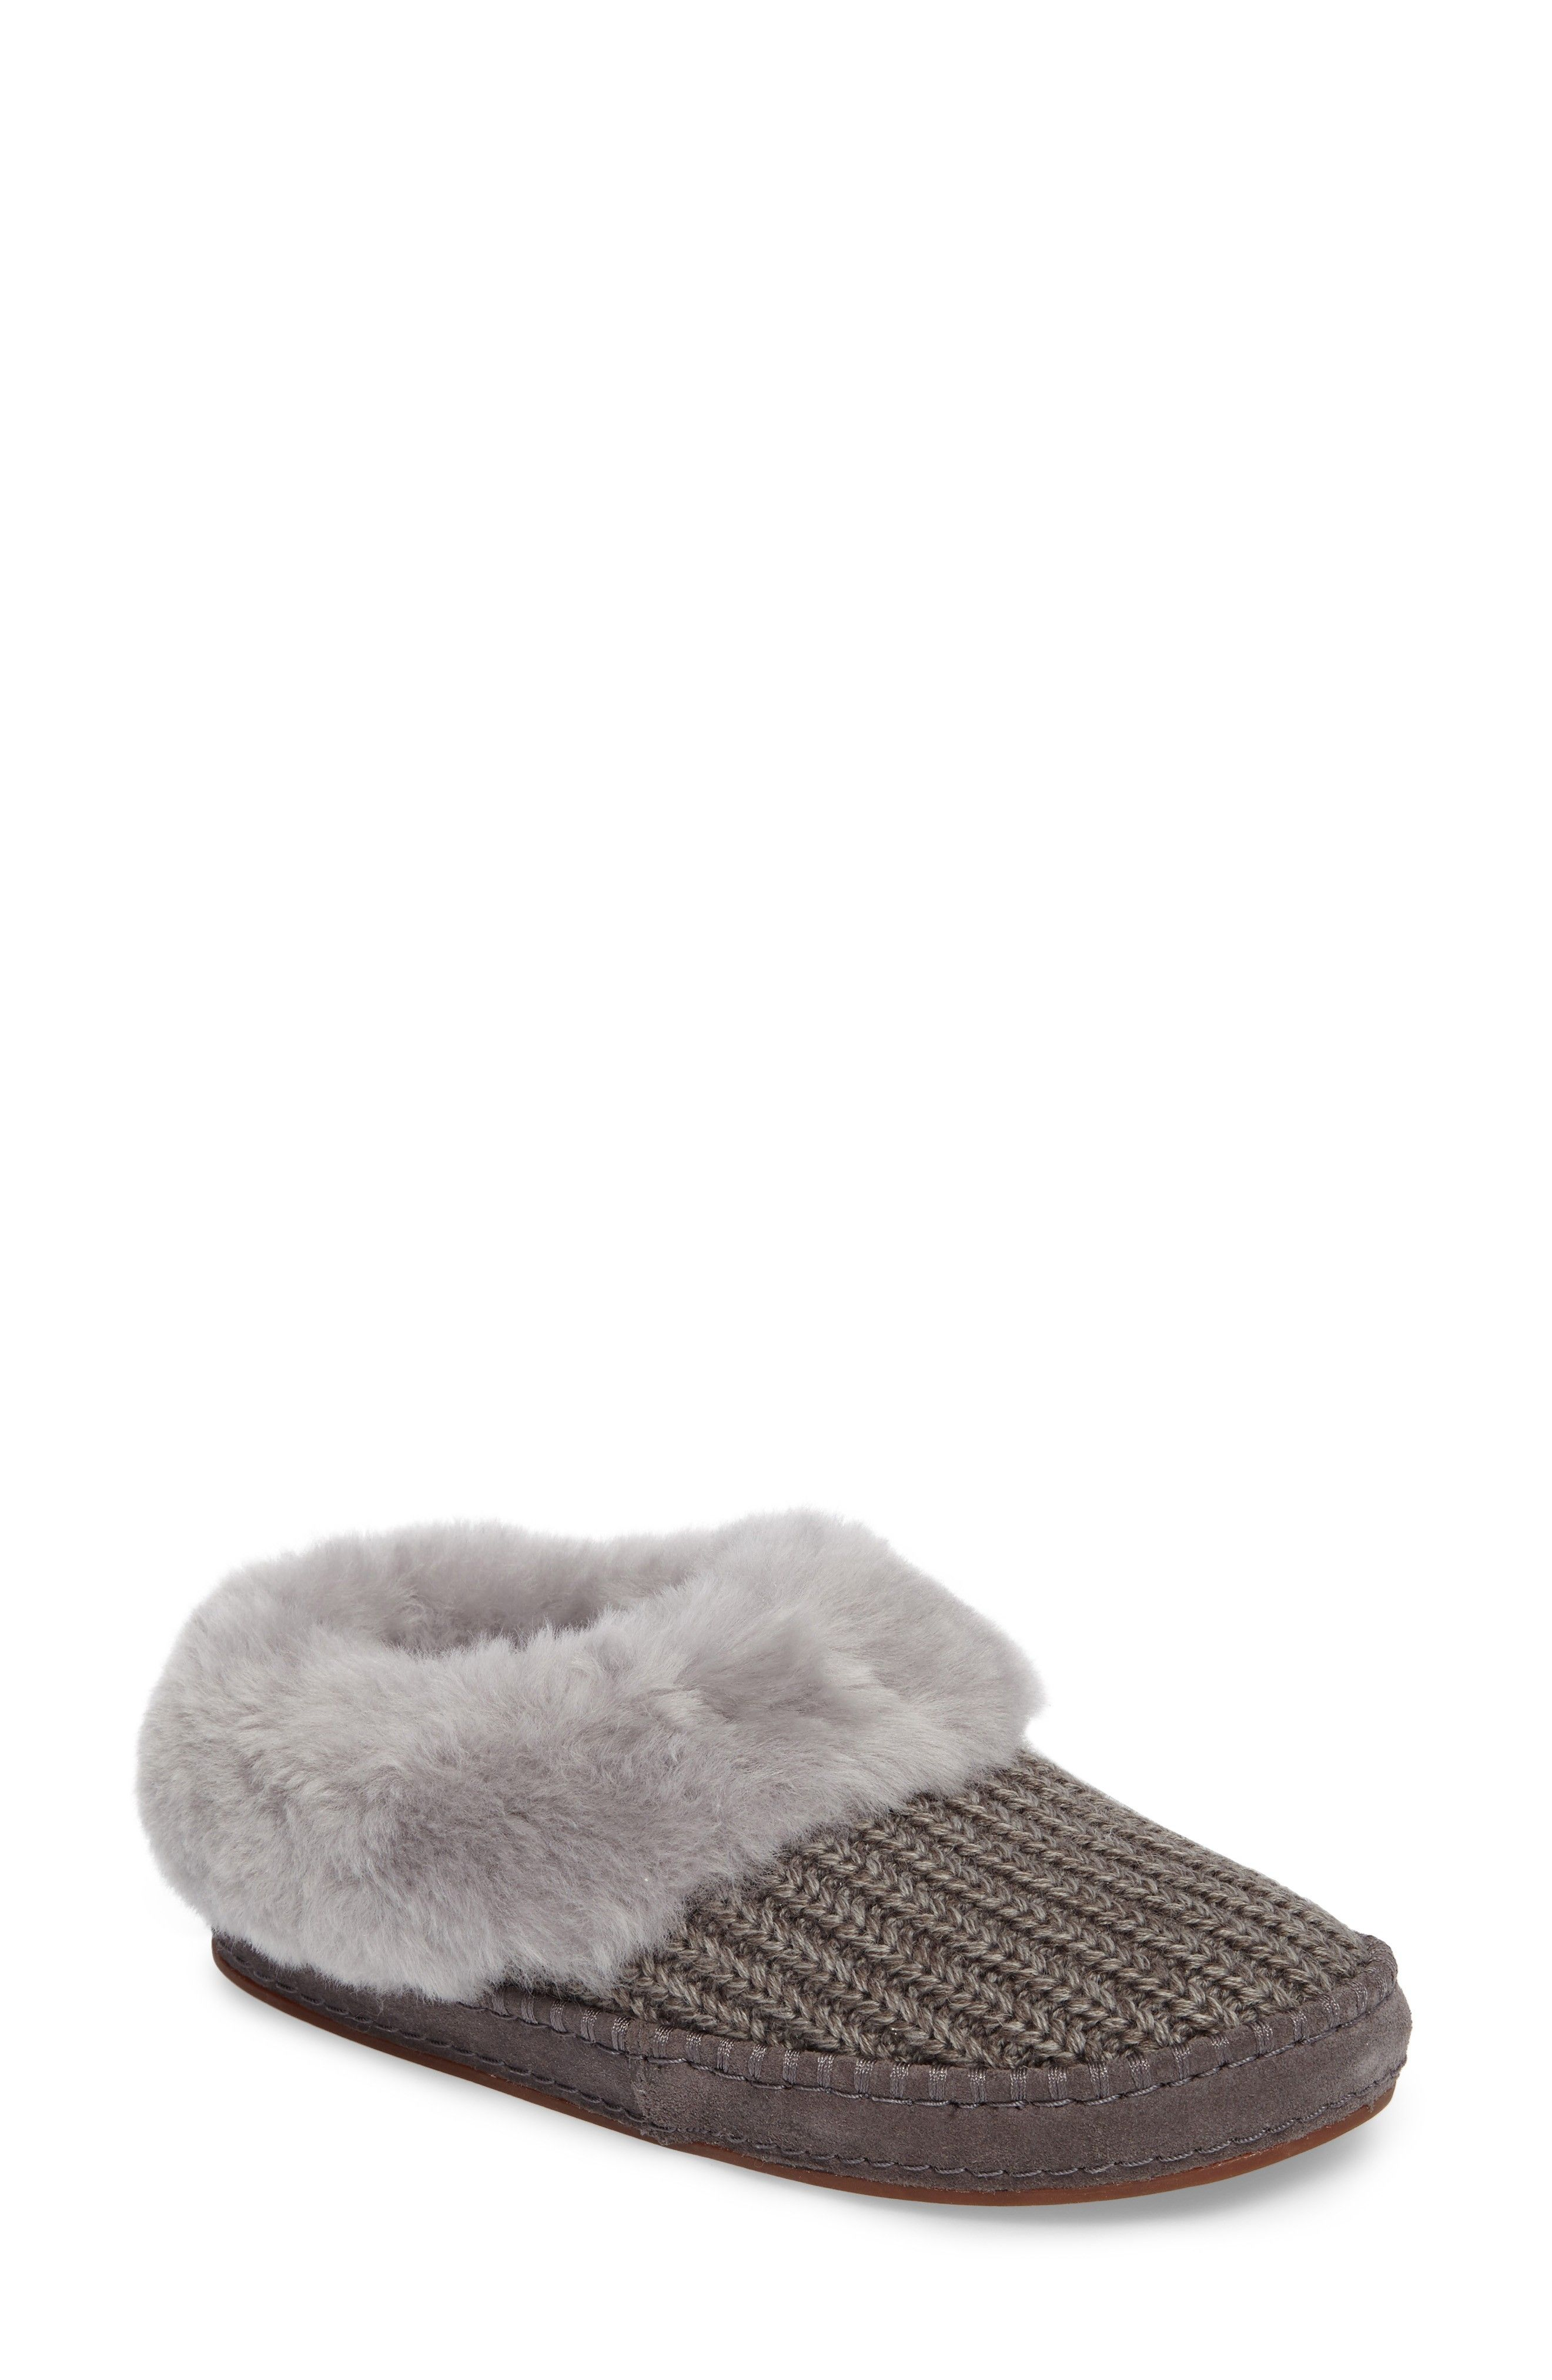 Cyber Monday Gift Guide   Ugg slippers